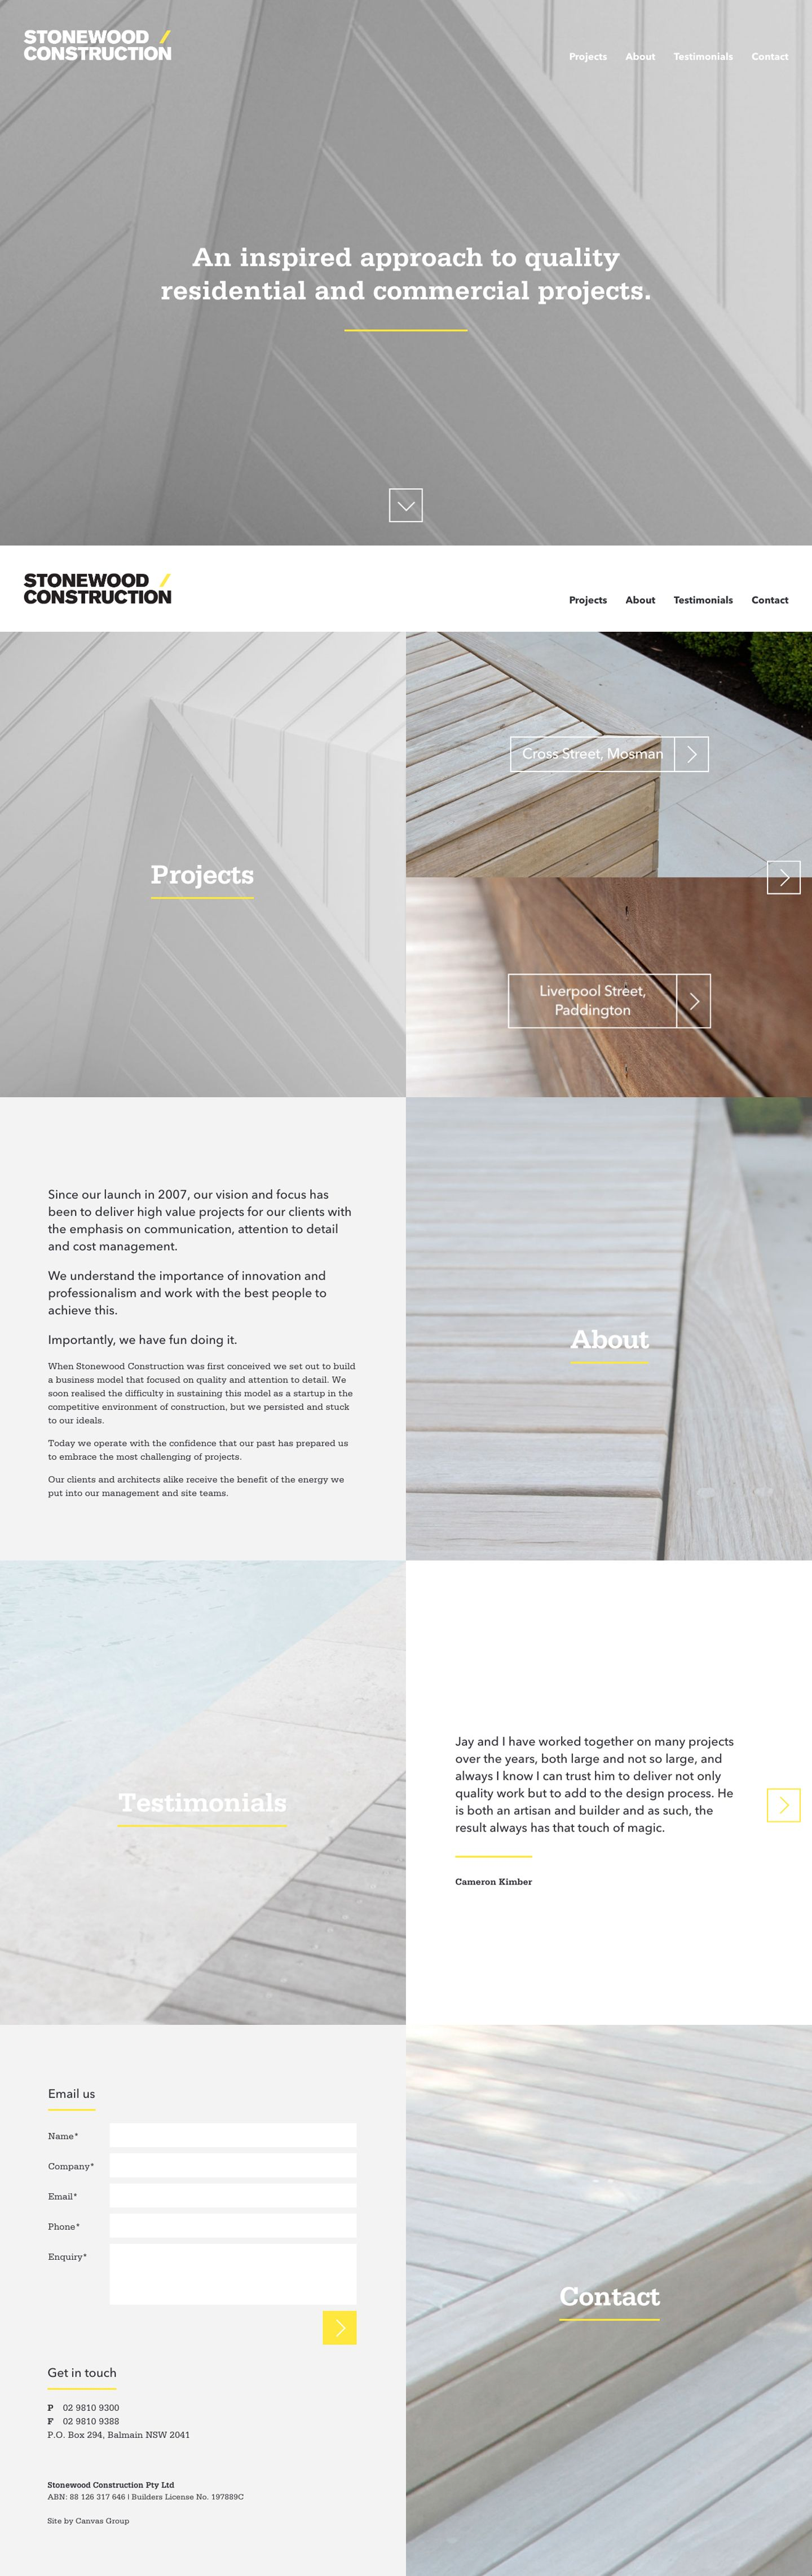 Are These The 10 Best Contractor Website Designs For